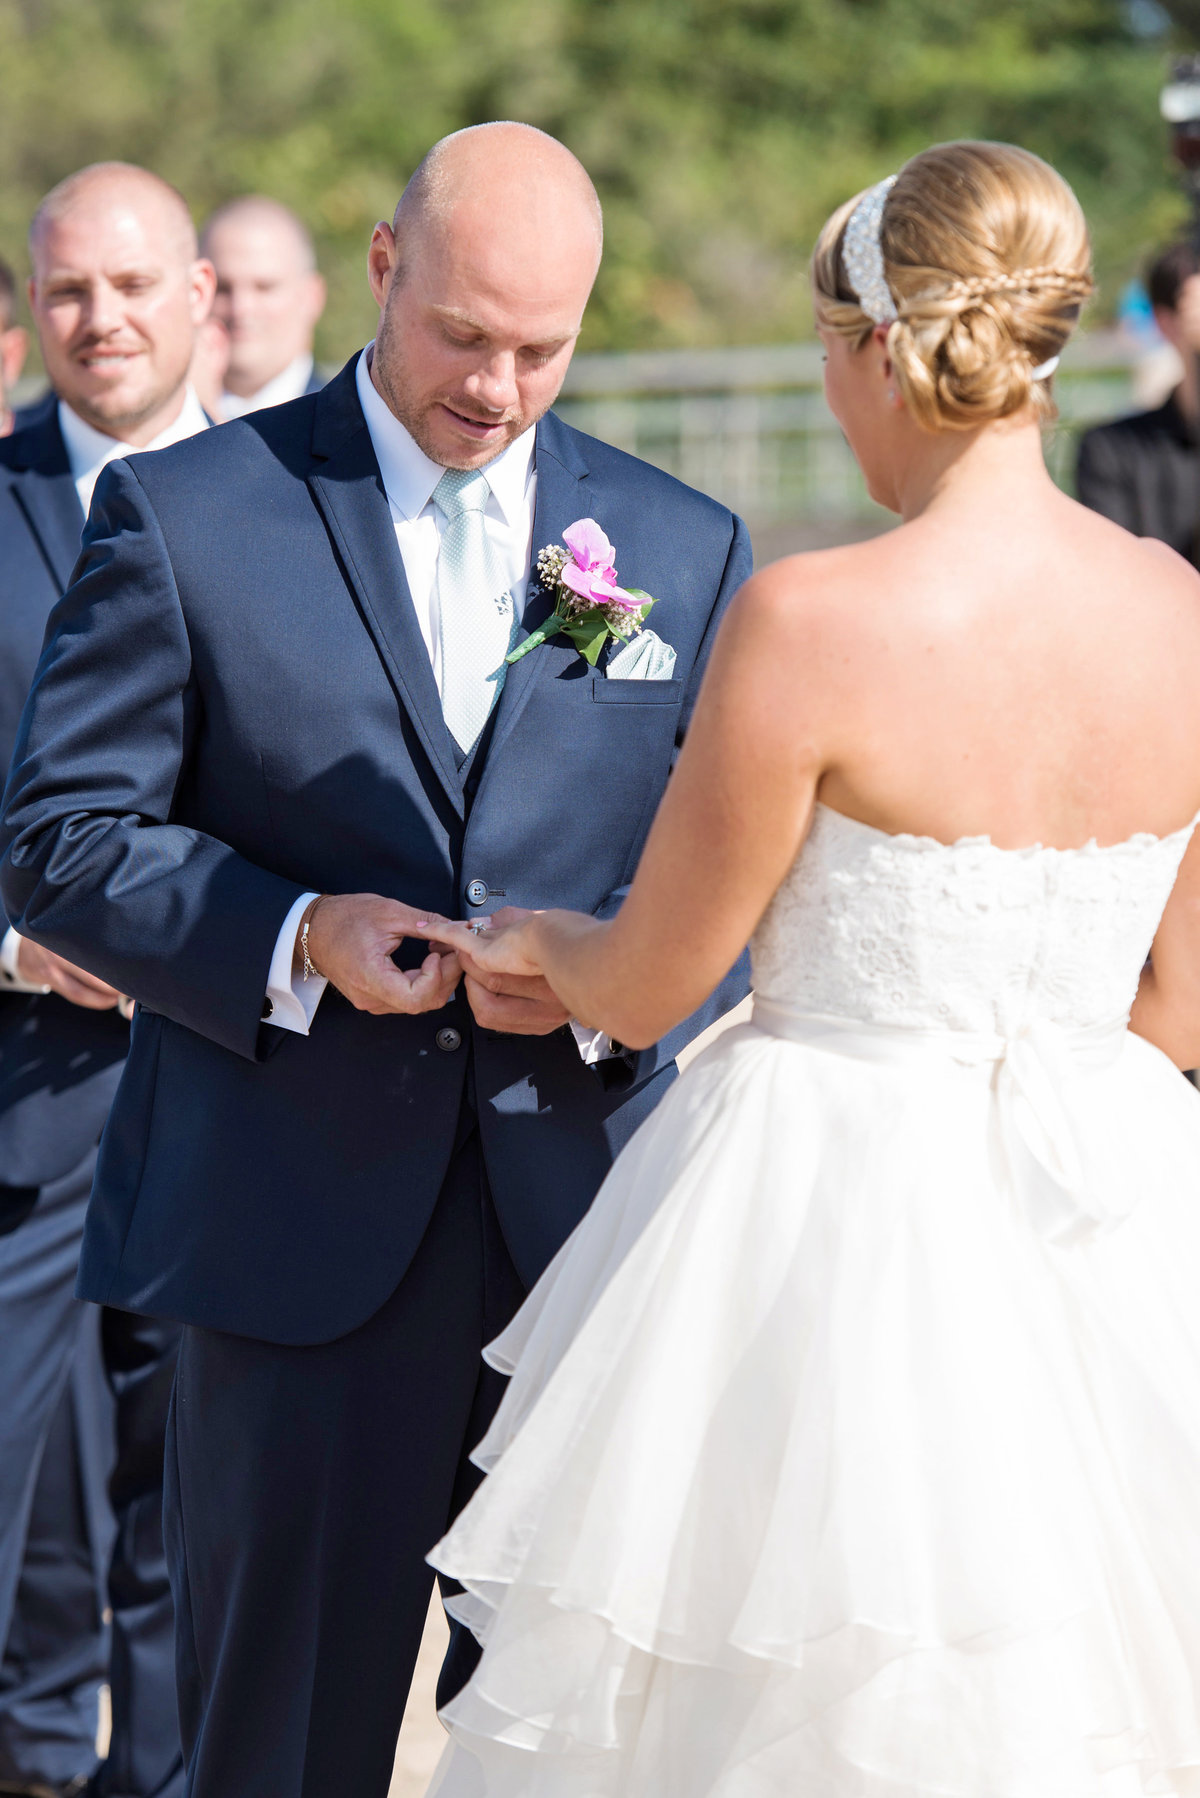 photo groom putting ring on bride during ceremony reception at Pavilion at Sunken Meadow